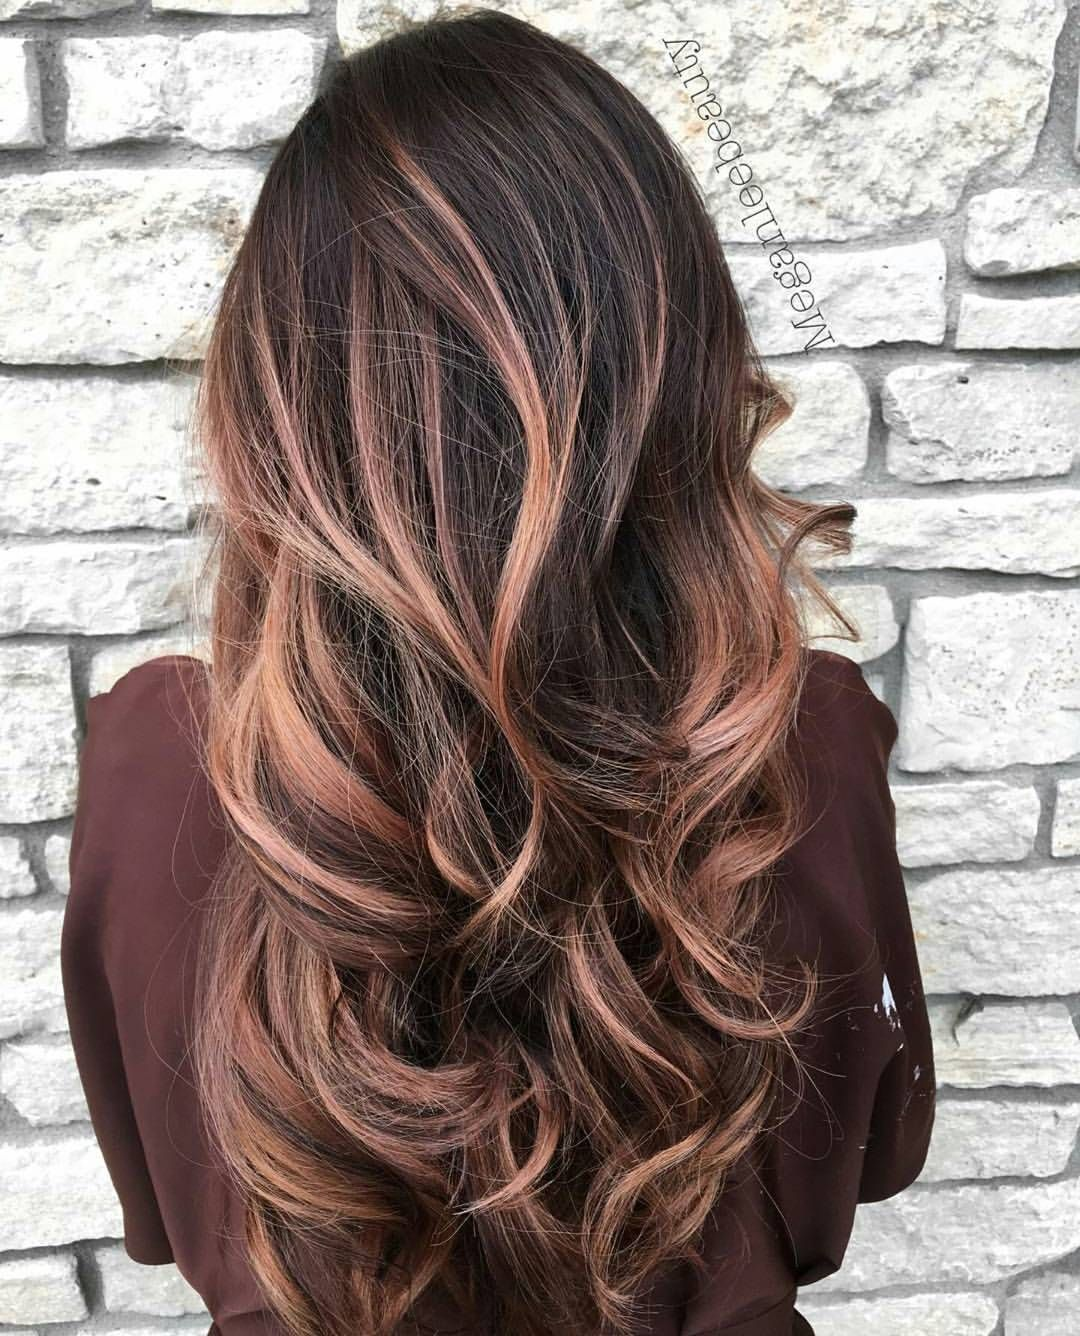 Rose Gold Brown Formulas Behindthechair Rosegold